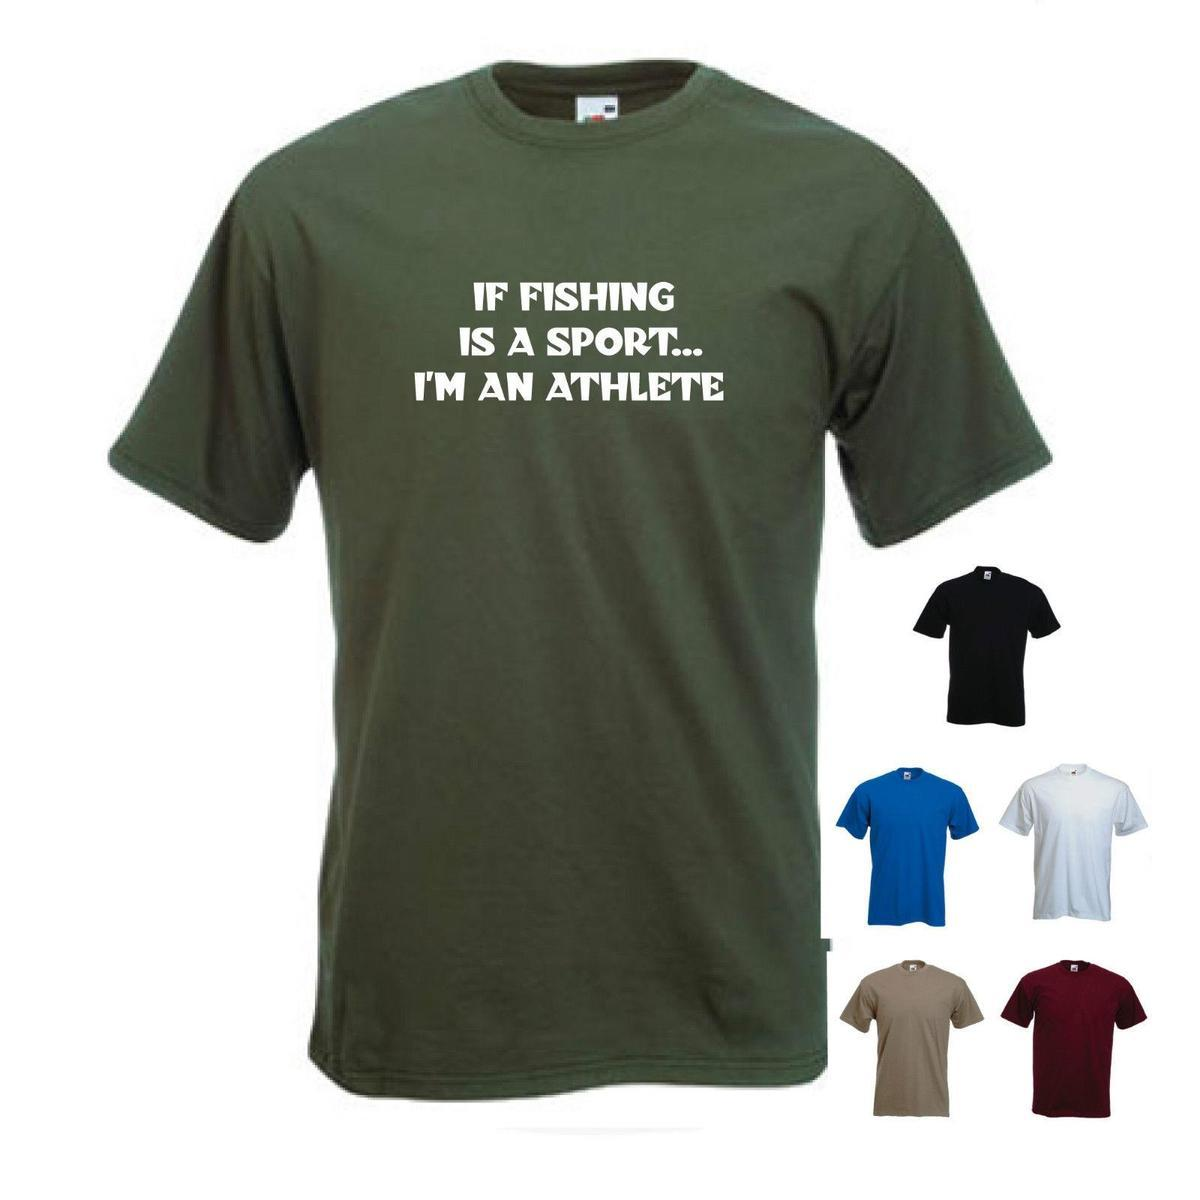 'If fishing is a sport...I'm an athlete'. - Funny mens fishing T-shirt. S-XXL